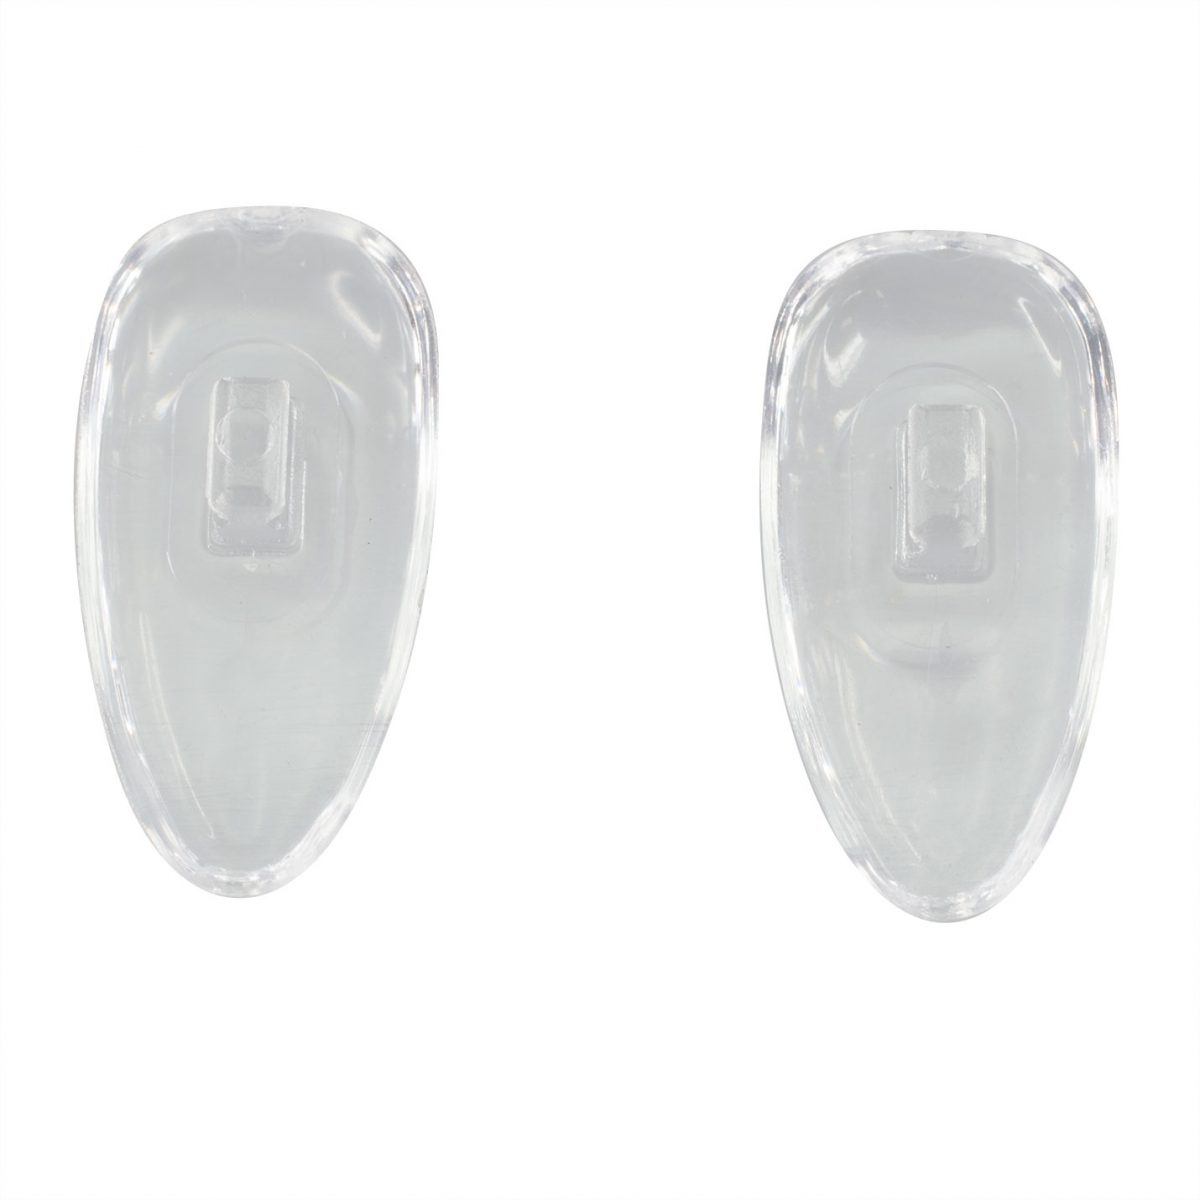 Symmetrical-PVC-Press-On-Nose-Pads-18mm